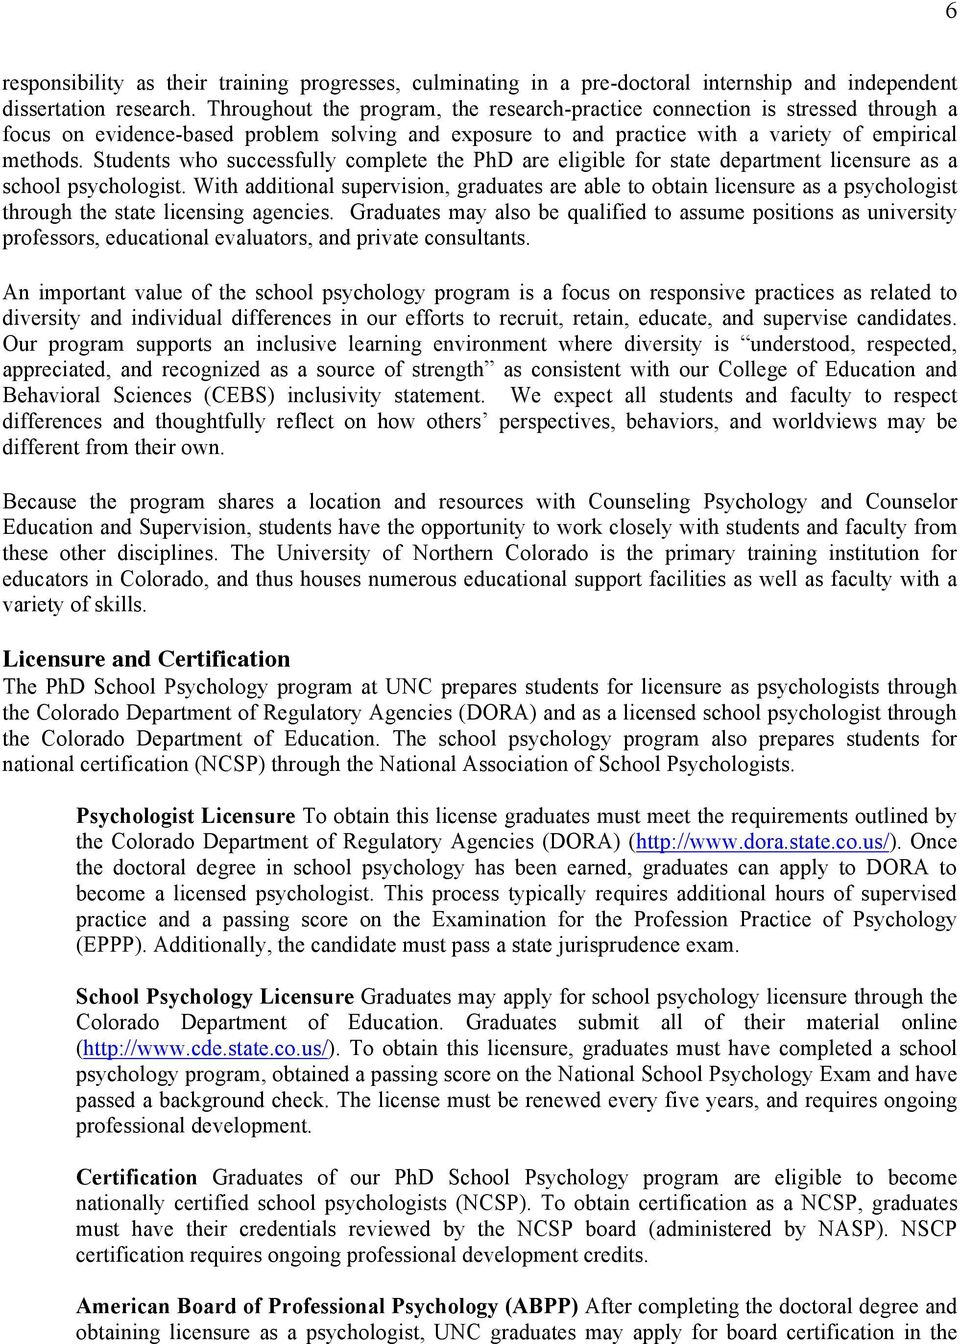 Students who successfully complete the PhD are eligible for state department licensure as a school psychologist.